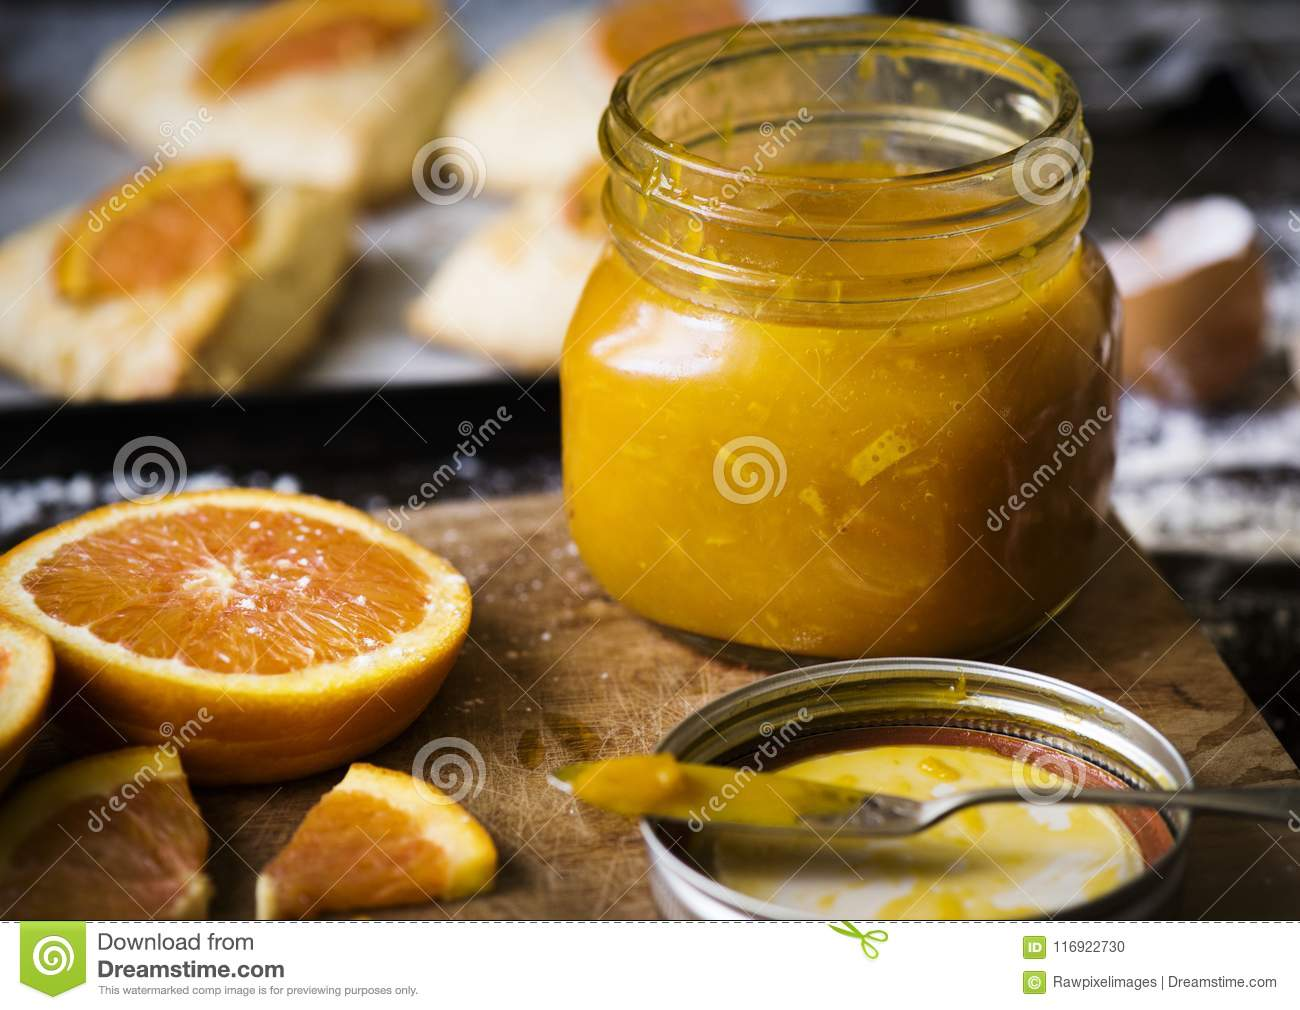 Homemade orange marmalade food photography recipe idea